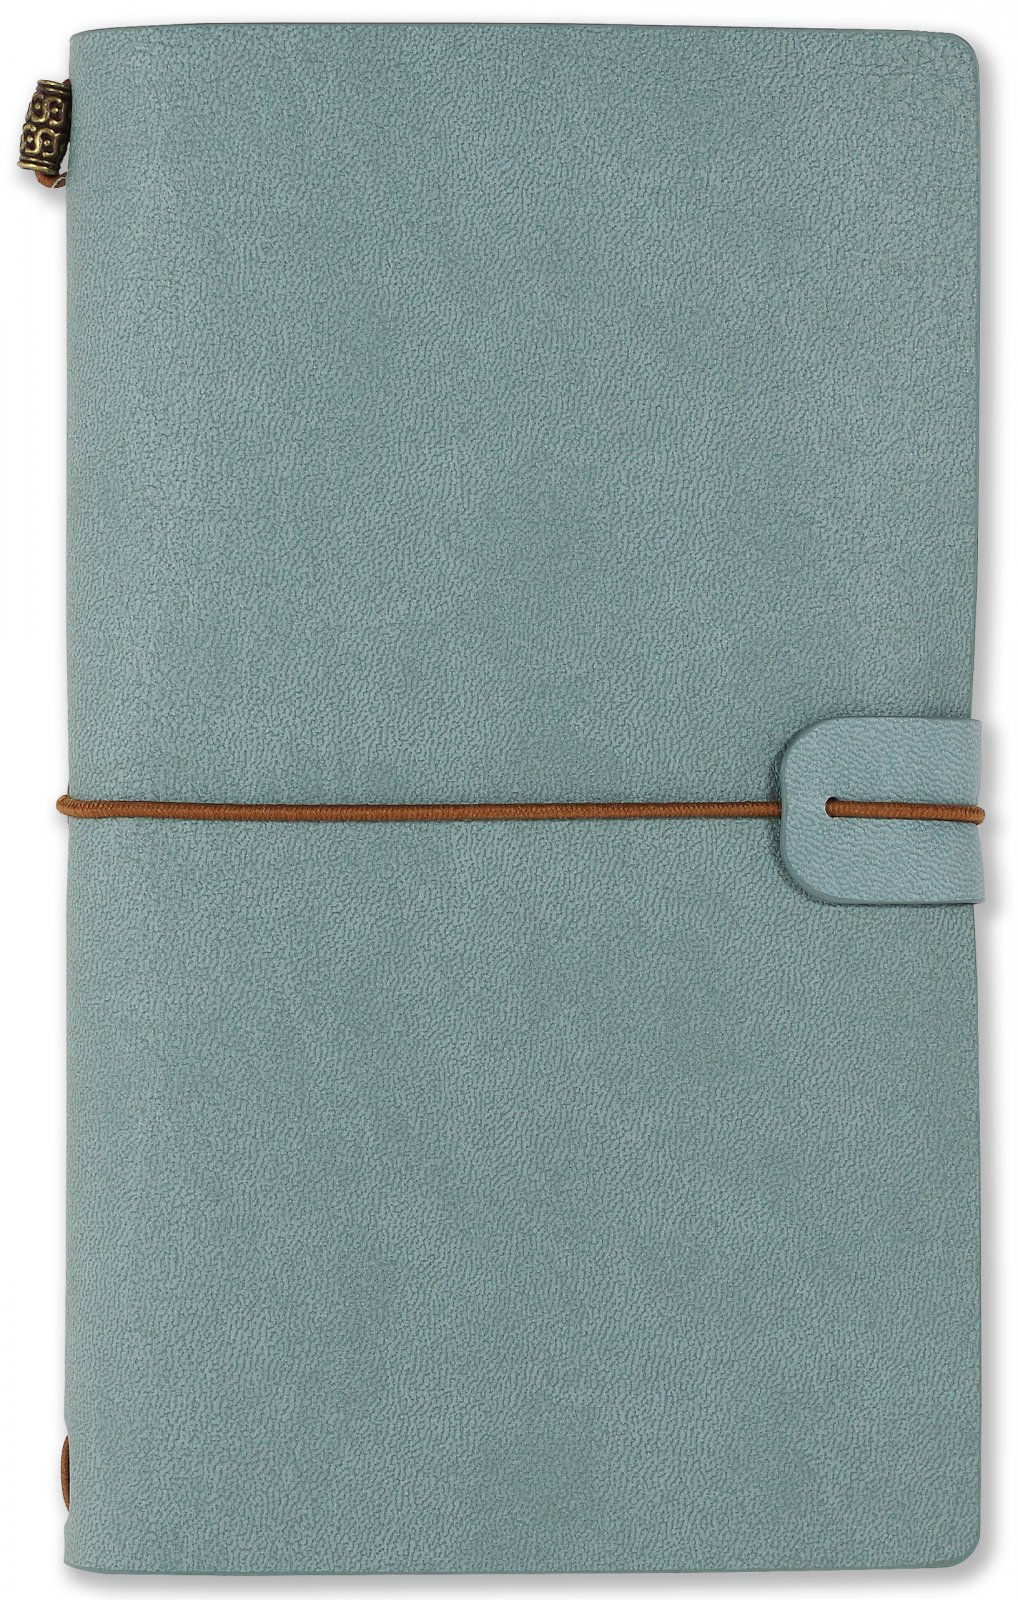 Voyager Notebook